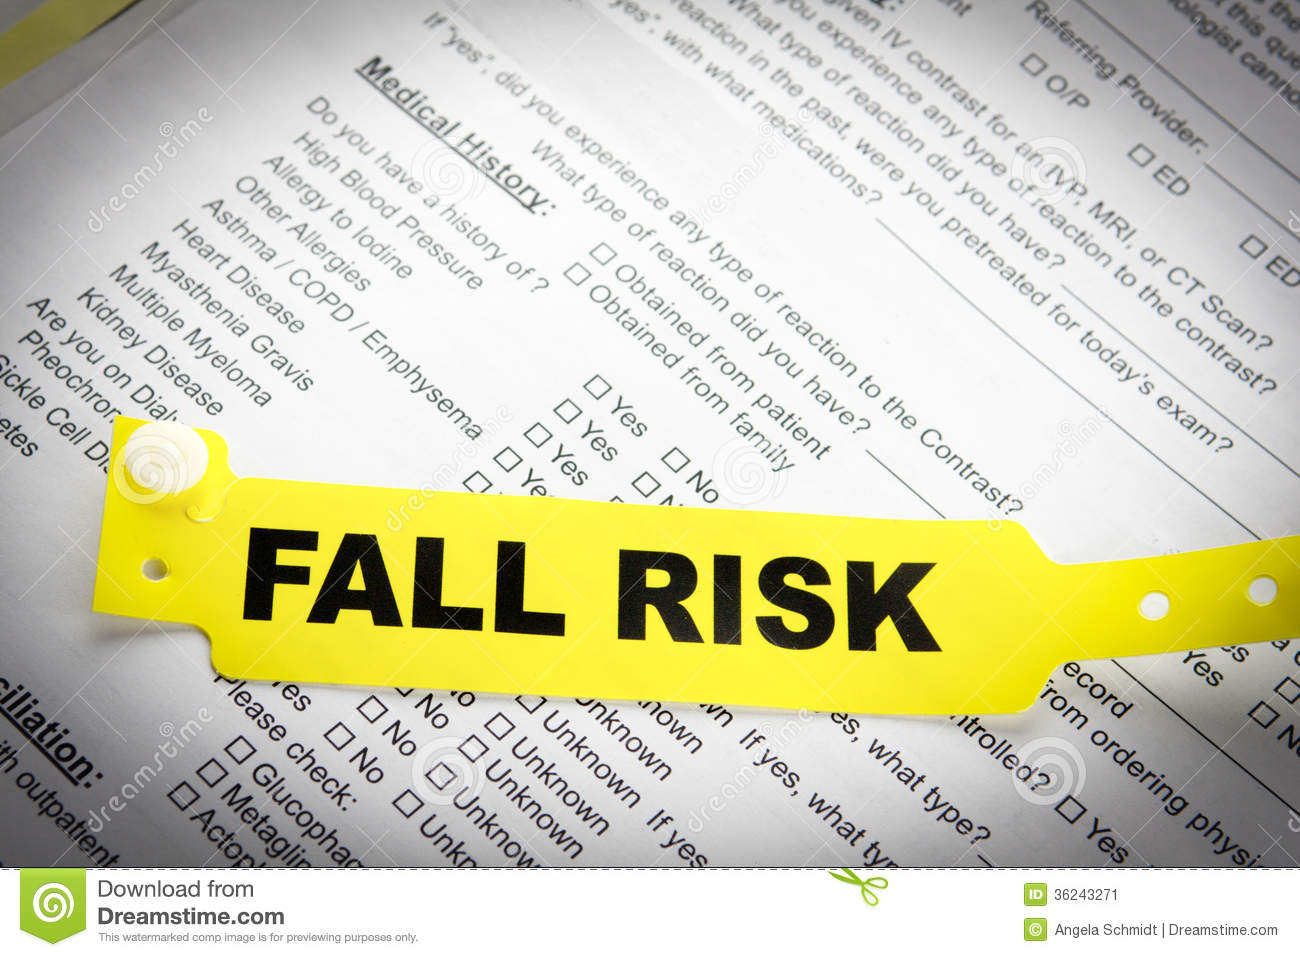 patient falls risk Risk screening & assessment  a falls risk assessment and  care planning should also be discussed with the patient or family/carers and falls risk interventions.